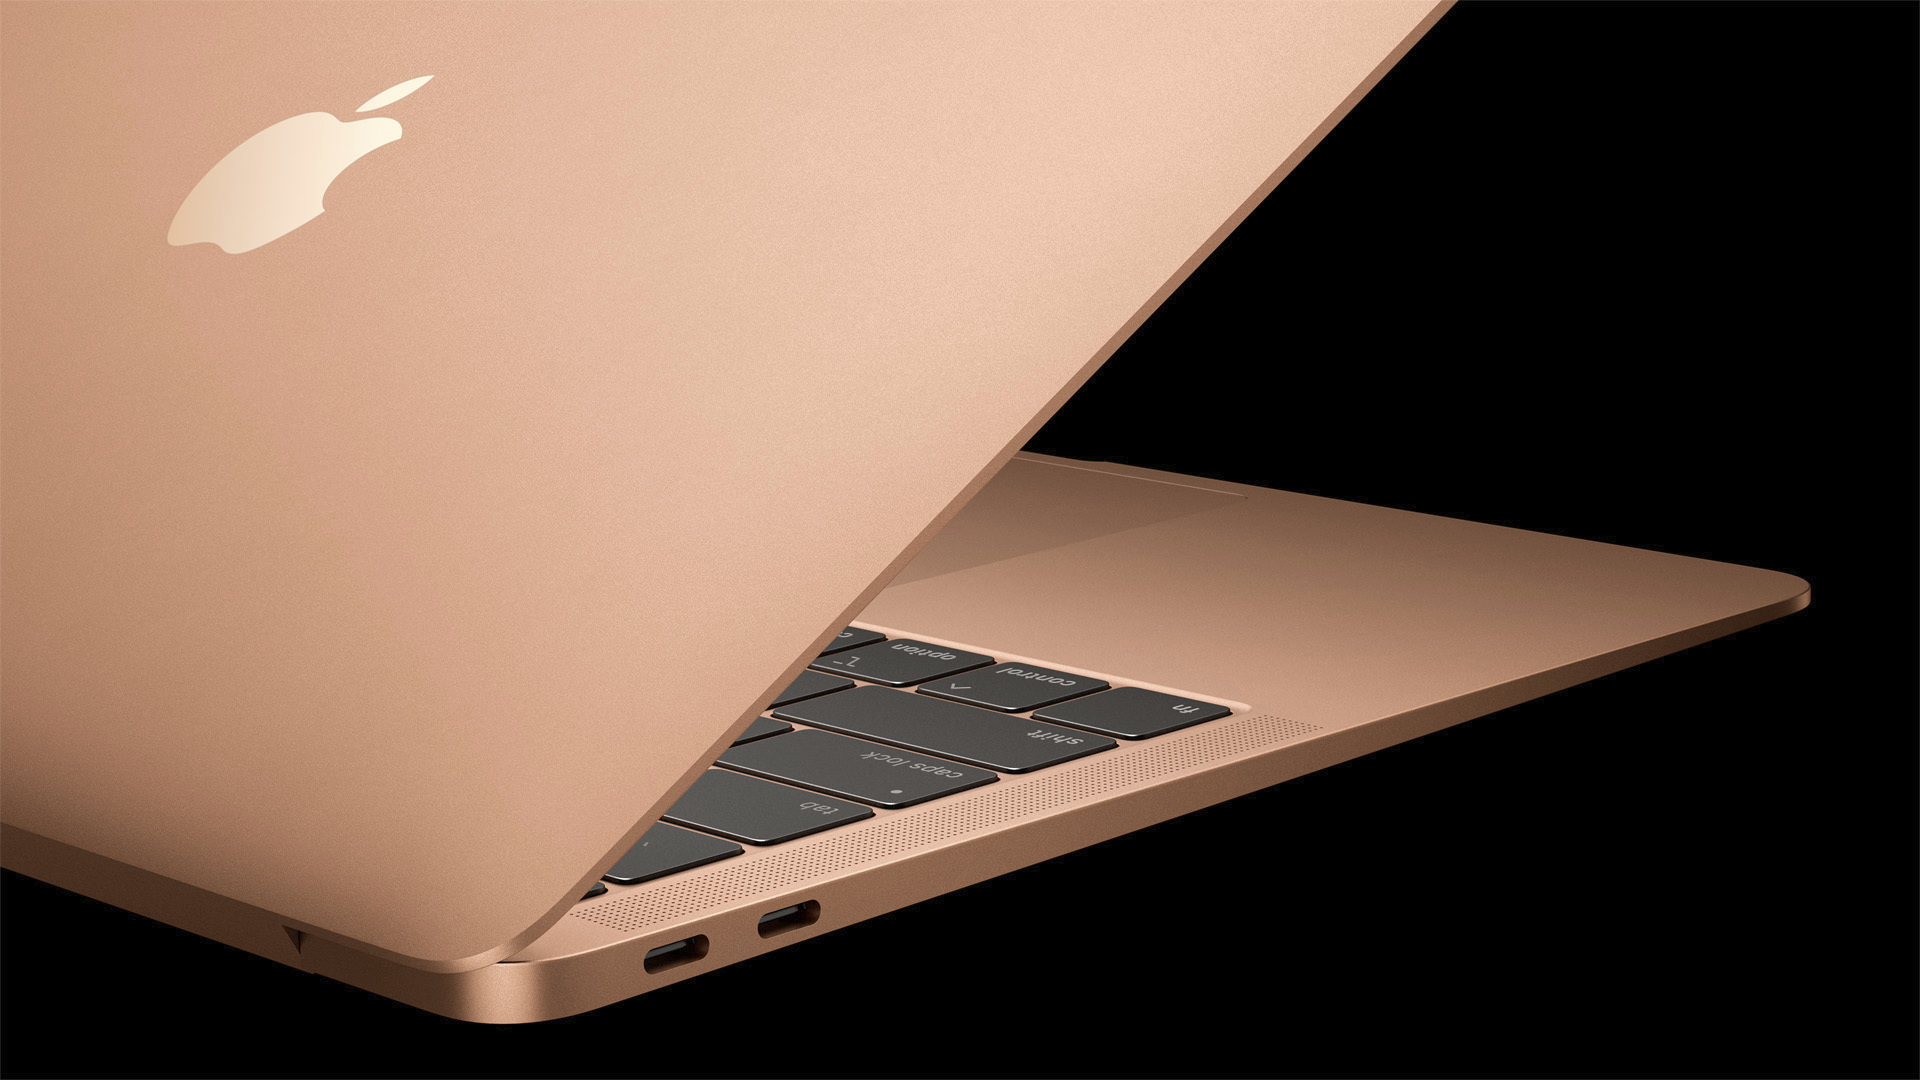 Apple's new MacBook Air is redesigned, refreshed, fits a